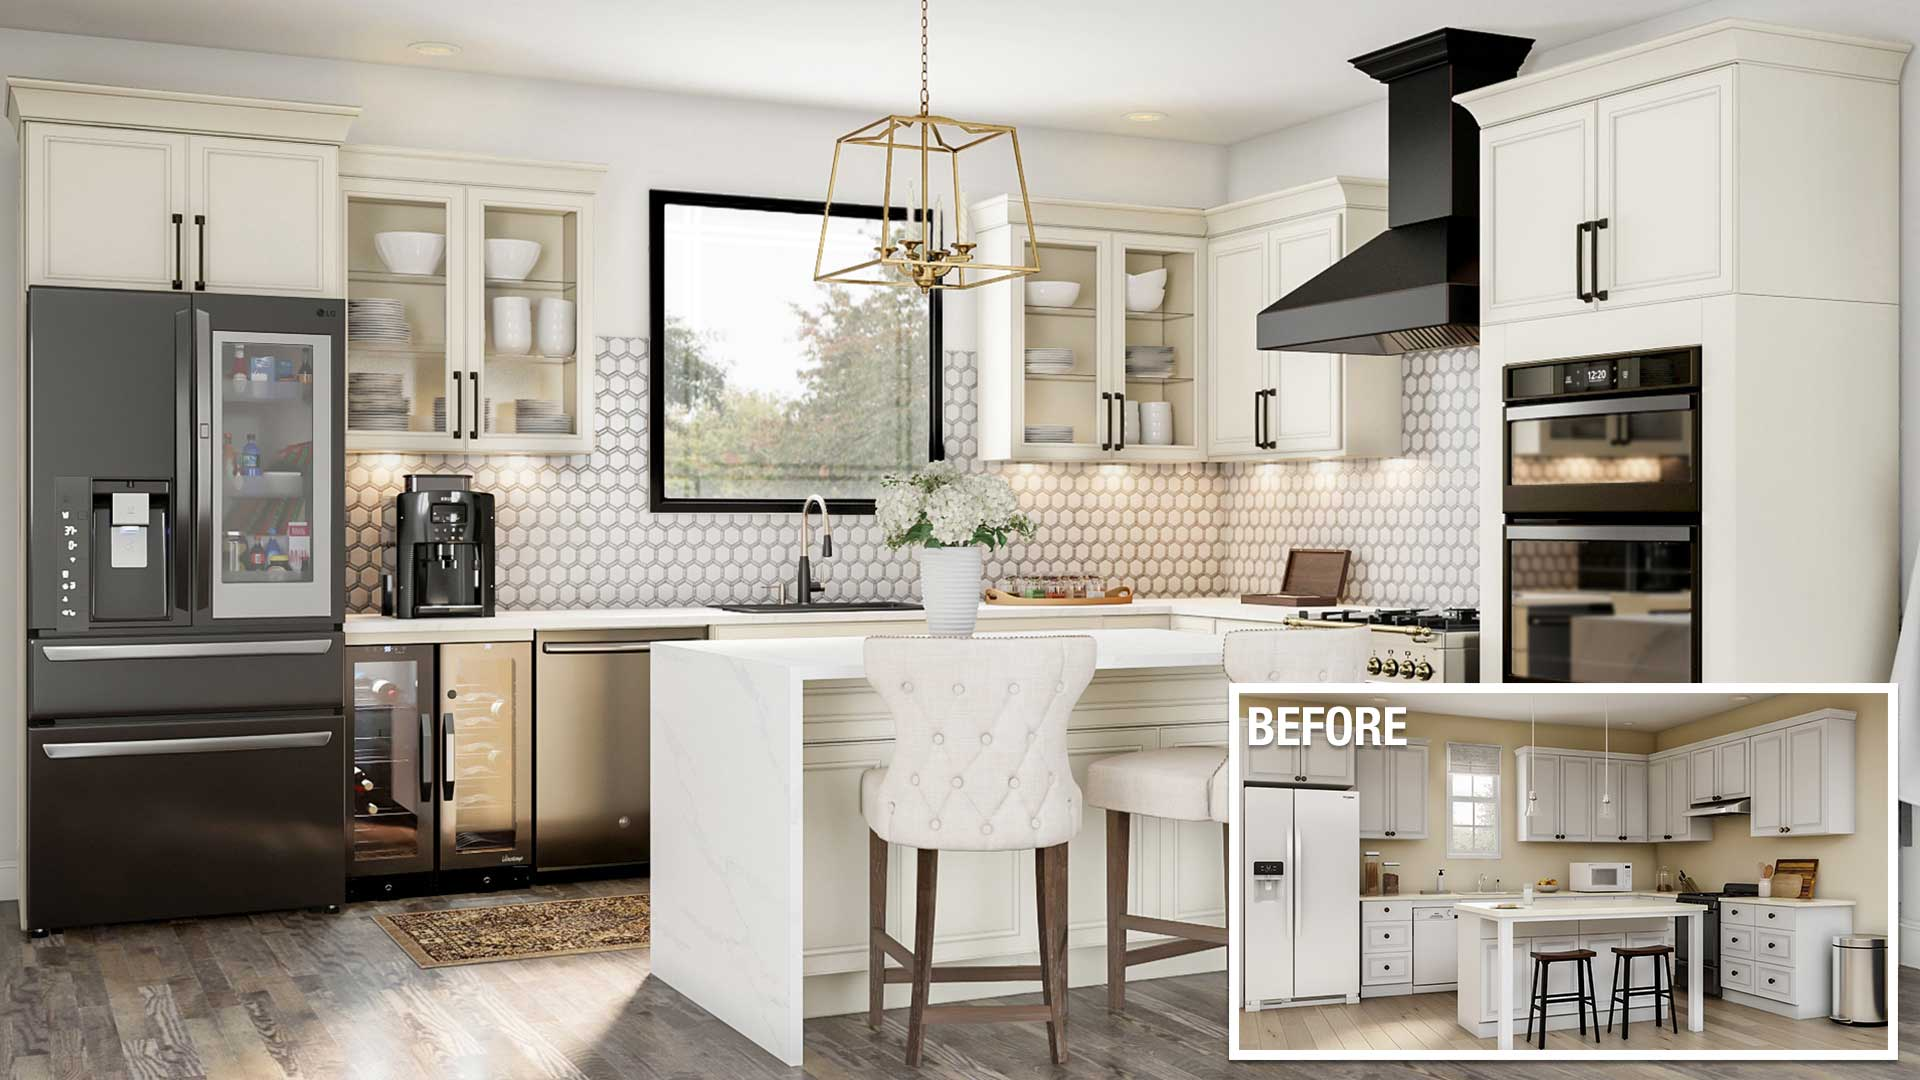 a before and after of an upscale kitchen remodel